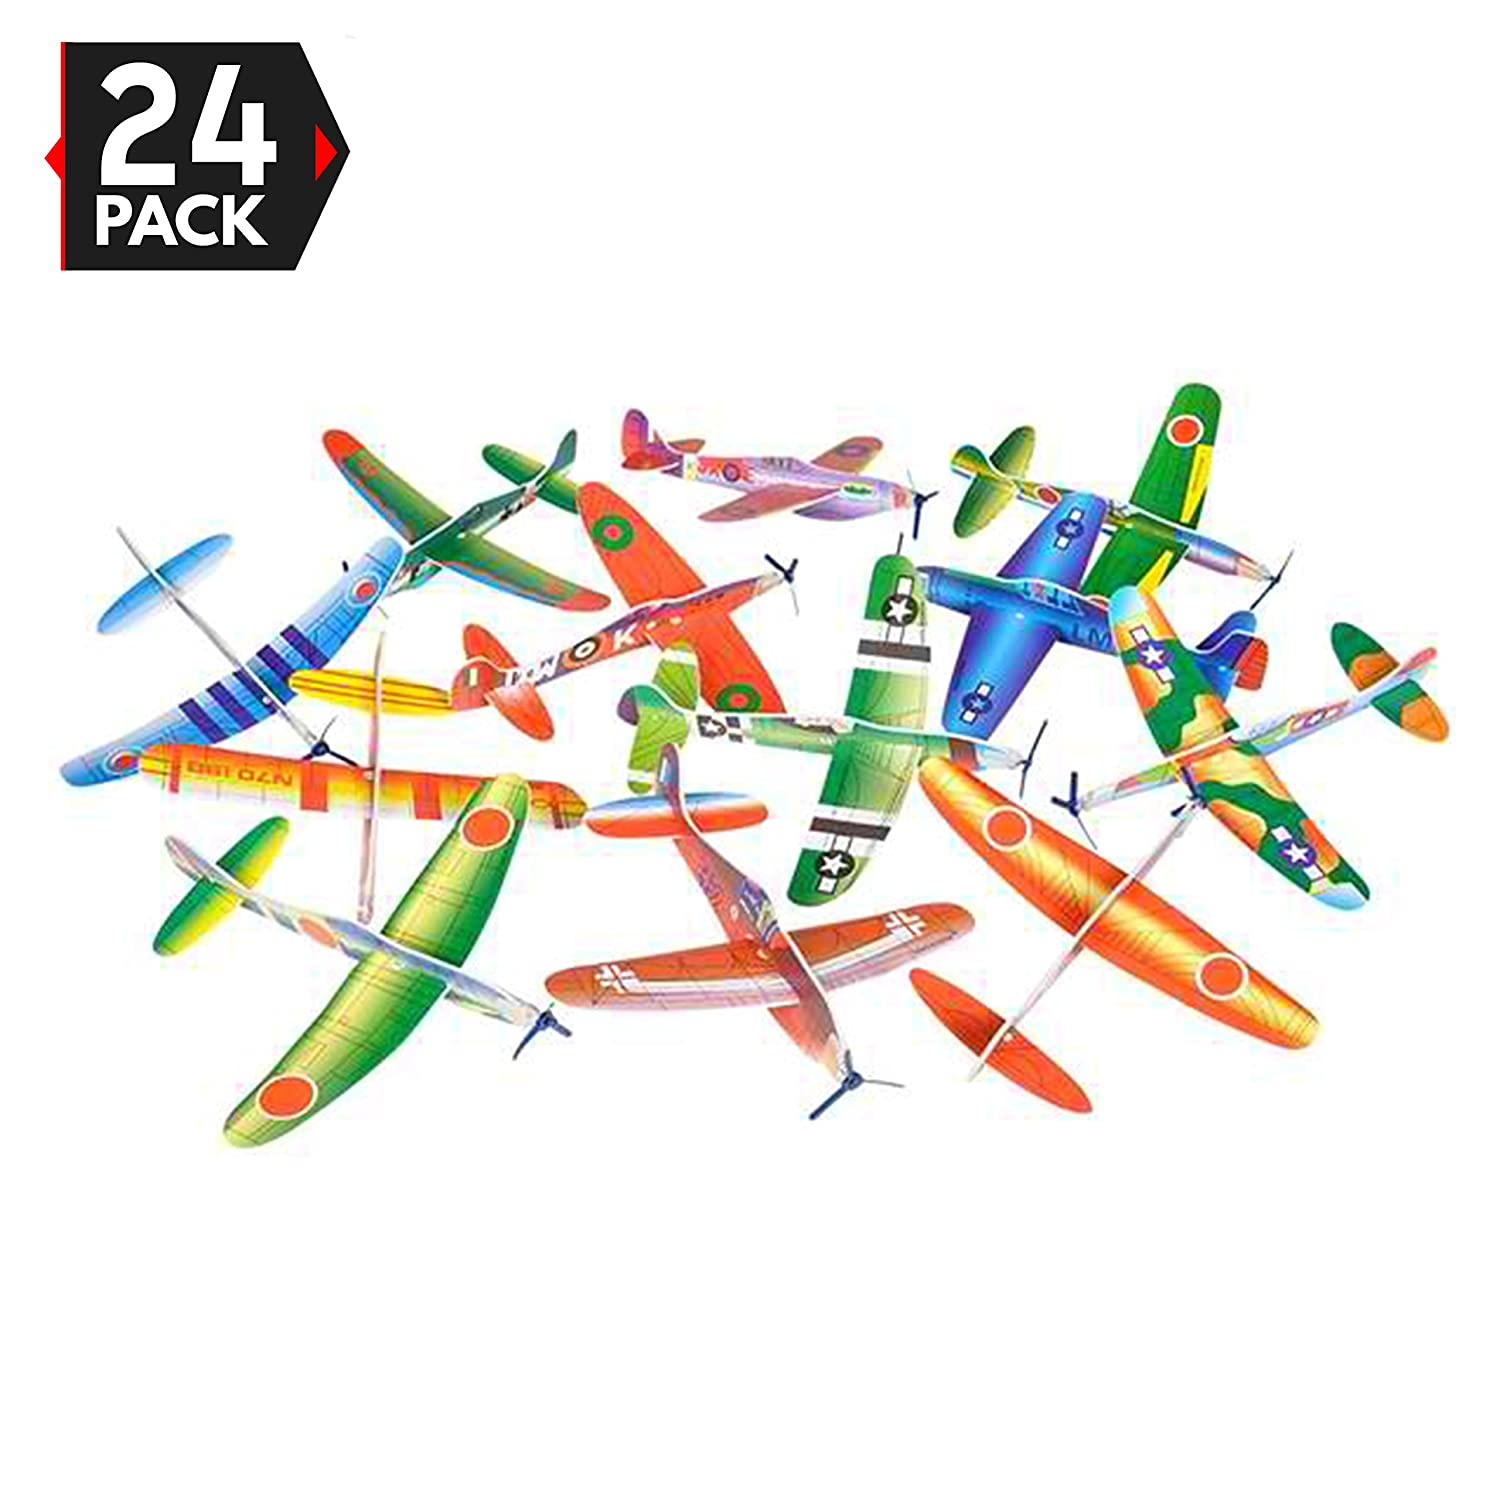 24 Pack 8 Inch Glider Planes - Birthday Party Favor Plane, Great Prize, Handout / Giveaway Glider, Flying Models, Two Dozen Big Mo's Toys